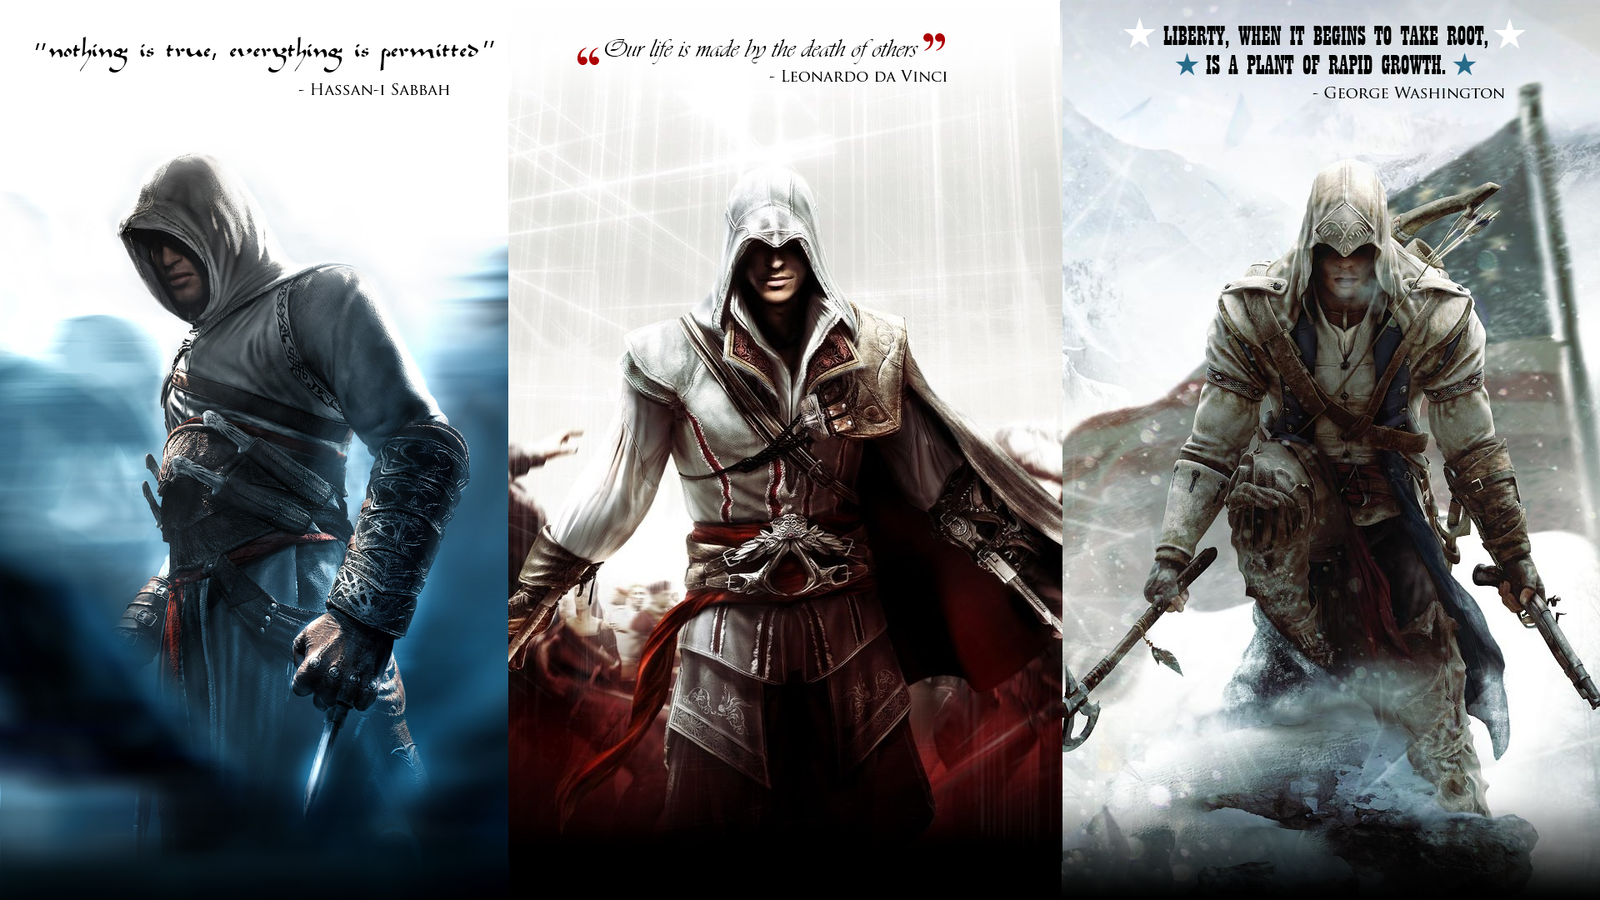 assassins creed altair ezio and connor by okiir on deviantart. Black Bedroom Furniture Sets. Home Design Ideas